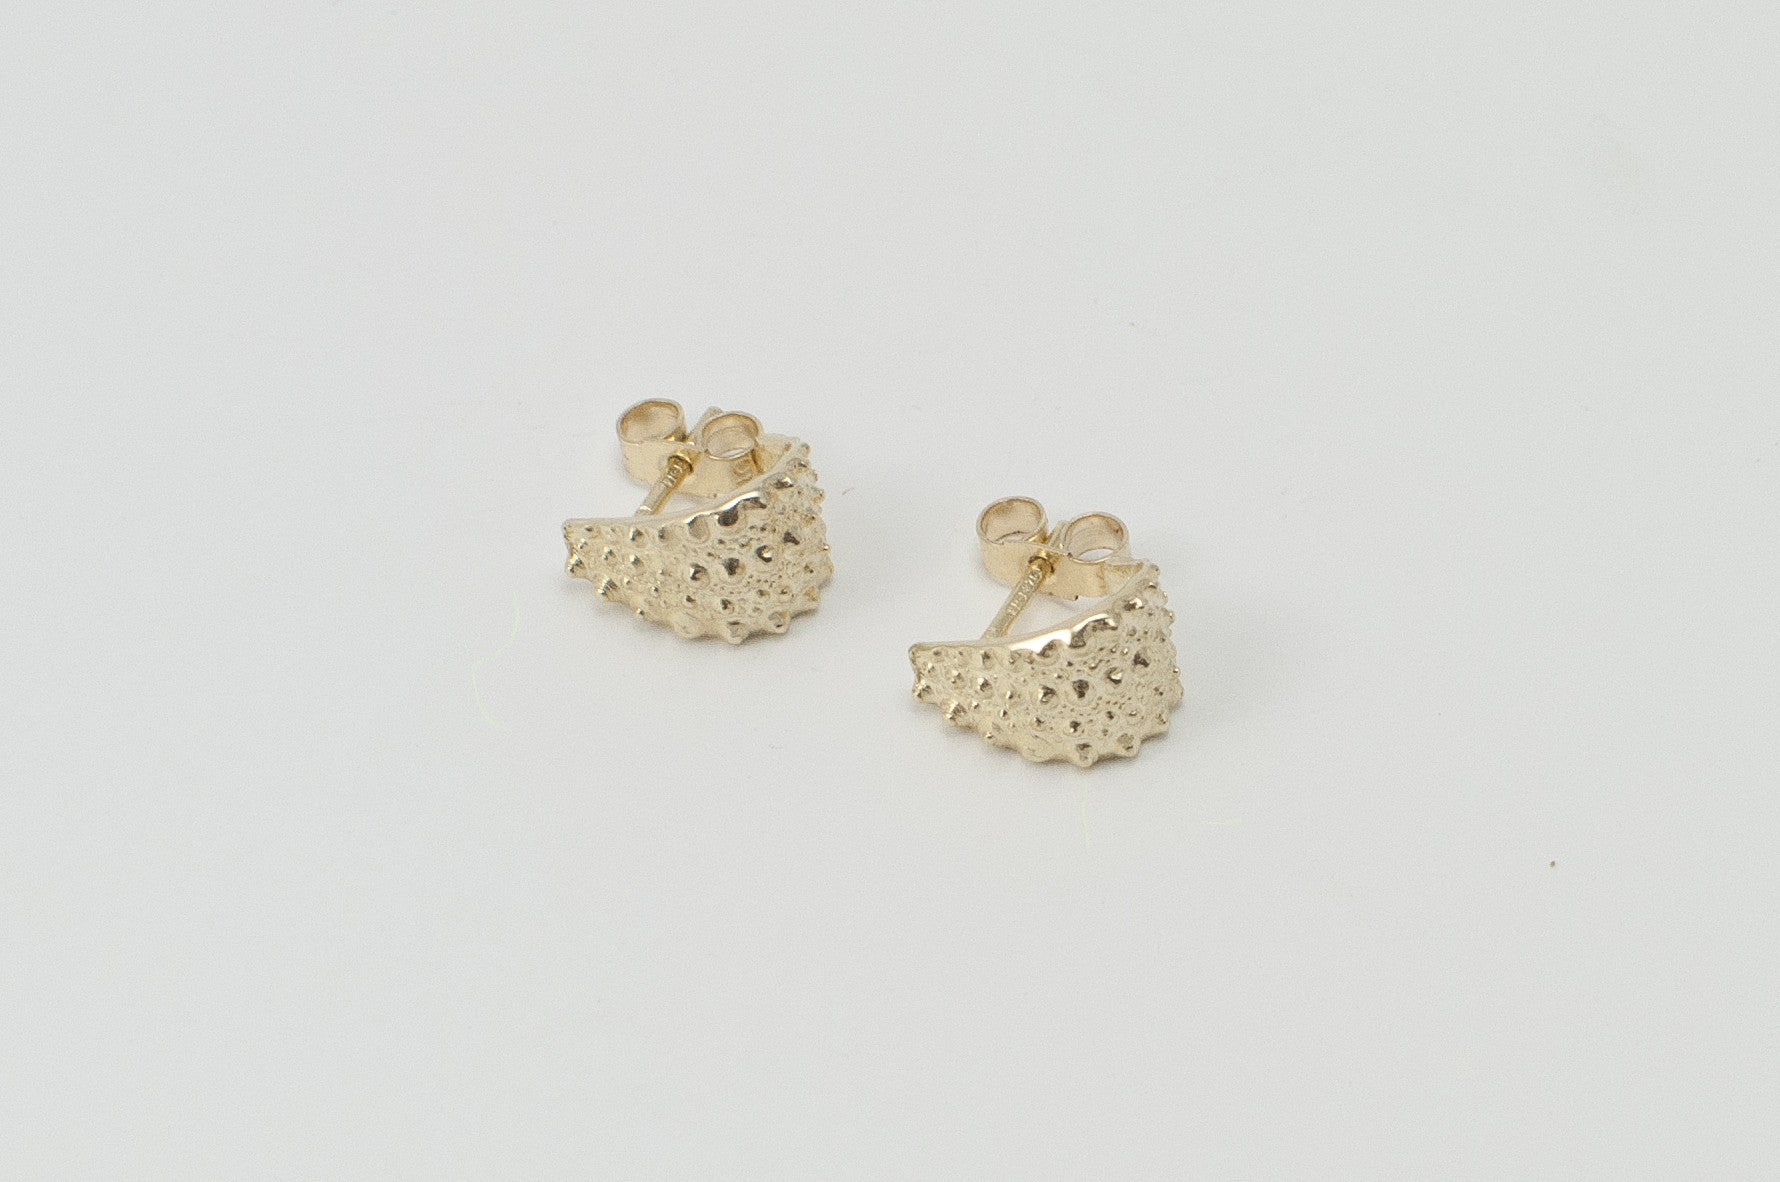 SEA URCHIN stud earrings - gold - Jennifer Kinnear Jewellery Ocean Collection